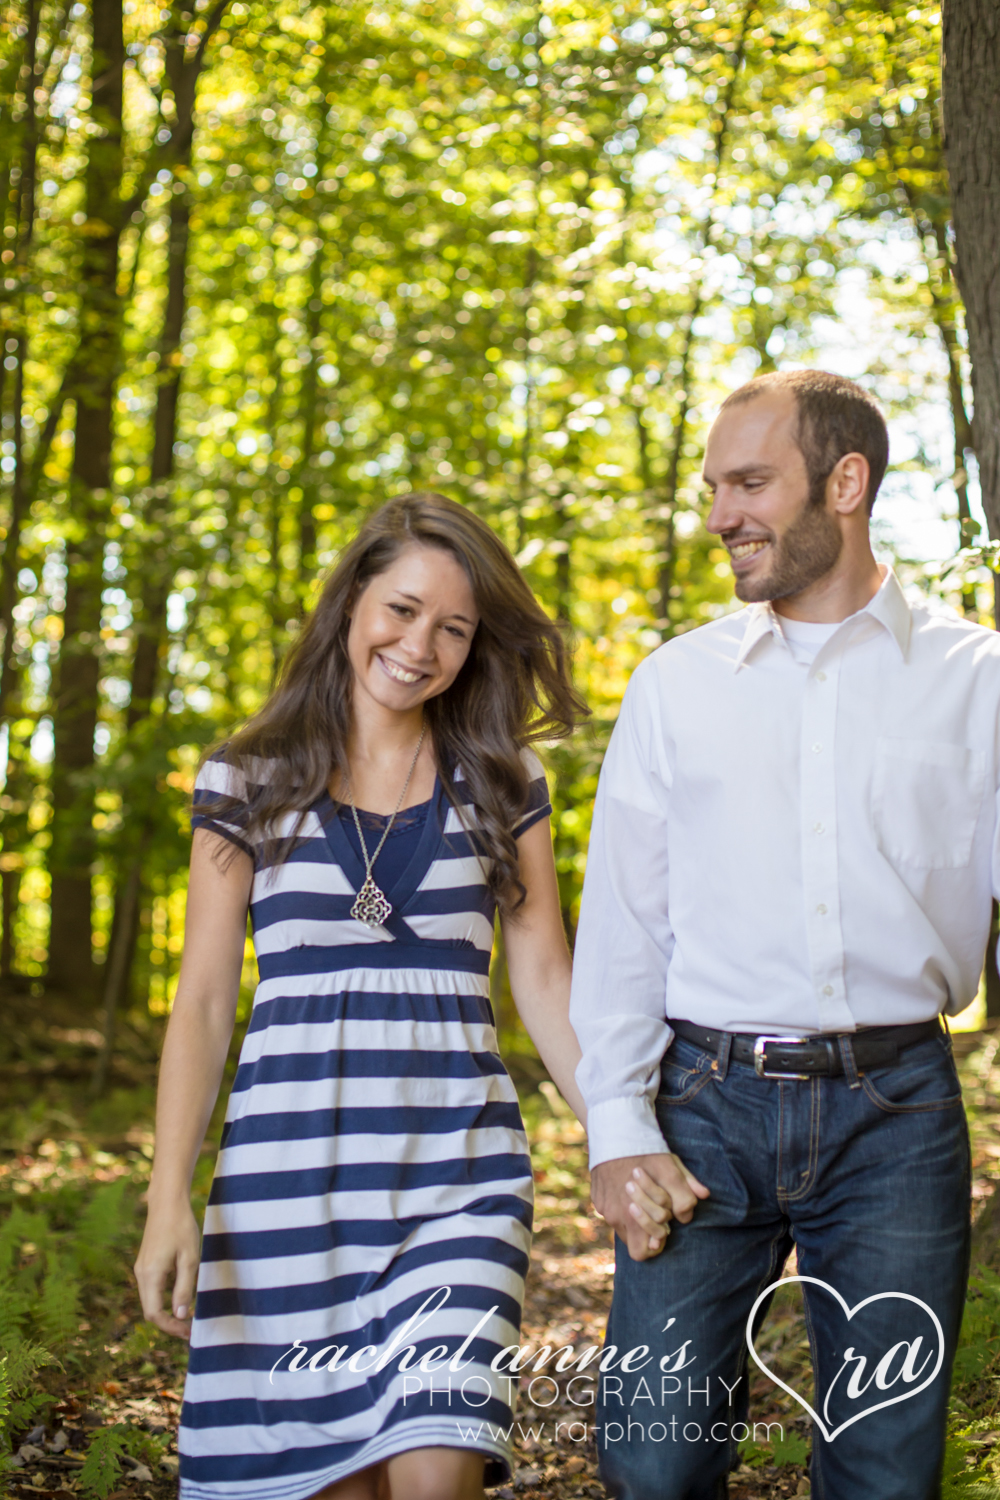 012-JAW-DUBIOS PA ENGAGEMENT PHOTOGRAPHY.jpg